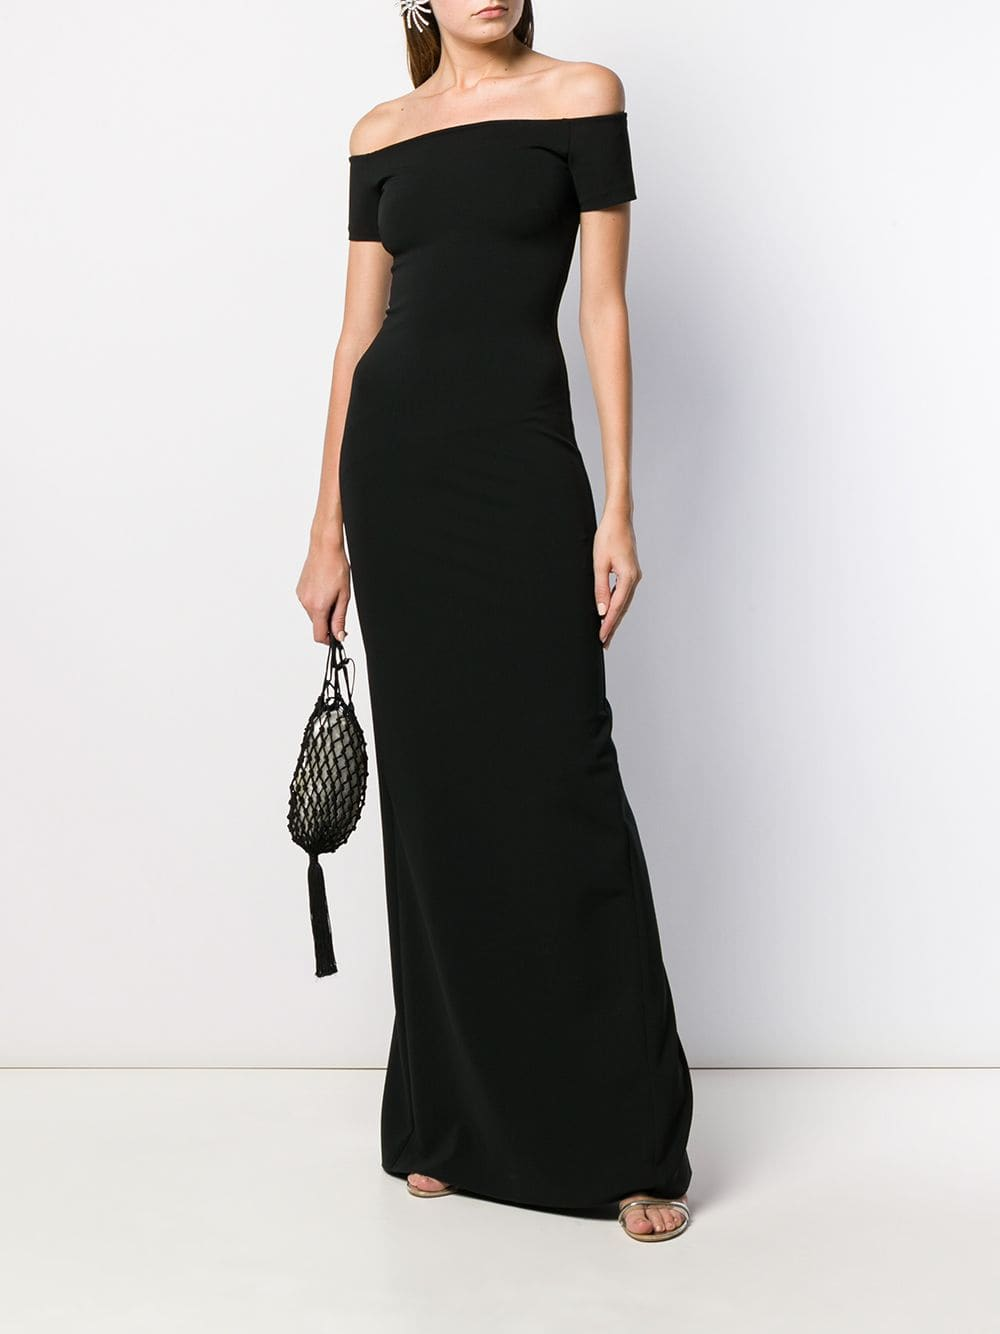 RALPH LAUREN Off The Shoulder Evening Gown